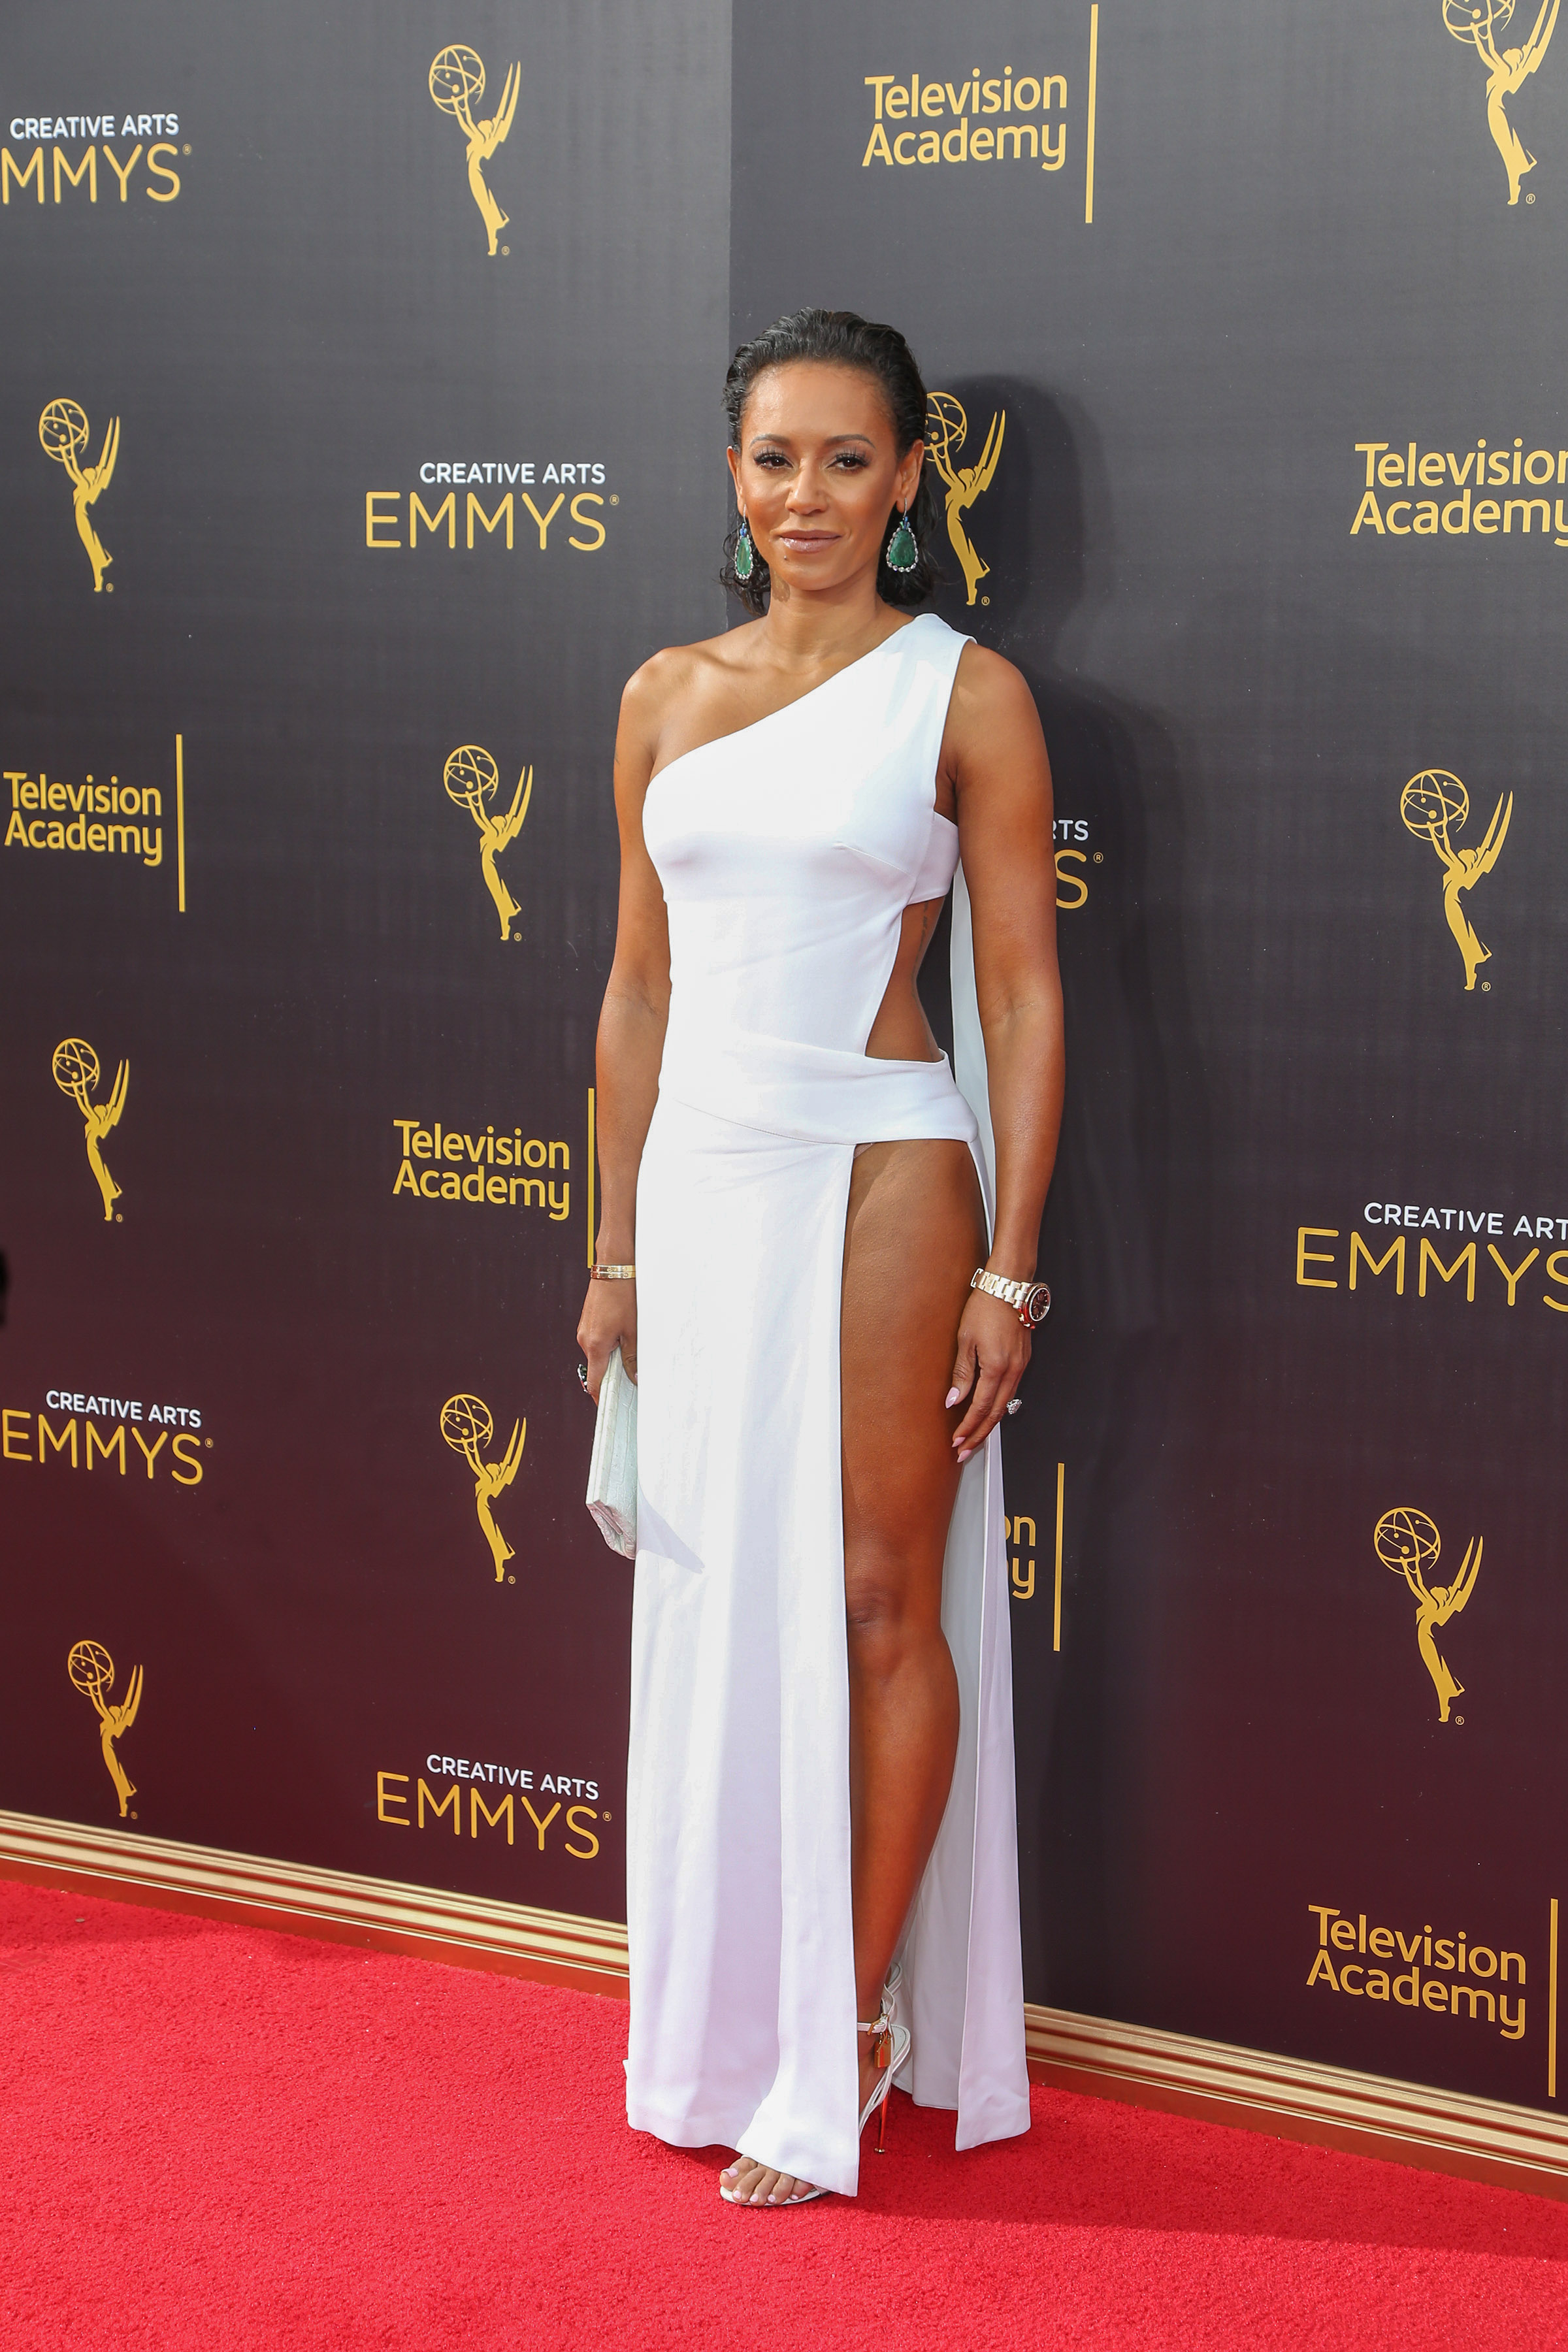 09/10/2016 - Mel B - 2016 Creative Arts Emmy Awards - Day 1 - Arrivals - Microsoft Theater, 777 Chick Hearn Court - Los Angeles, CA, USA - Keywords: Spice Girls, Scary Spice, Melanie Brown, Melanie B, English recording artist, songwriter, dancer, actress, author, television presenter, talent competition judge, model, woman, Vertical, Award Show, Portrait, Photography, Arts Culture and Entertainment, Person, People, Celebrity, Celebrities, Annual Event, Attending, Appearance, Red Carpet Event, Topix, Bestof, California Orientation: Portrait Face Count: 1 - False - Photo Credit: PRPhotos.com - Contact (1-866-551-7827) - Portrait Face Count: 1